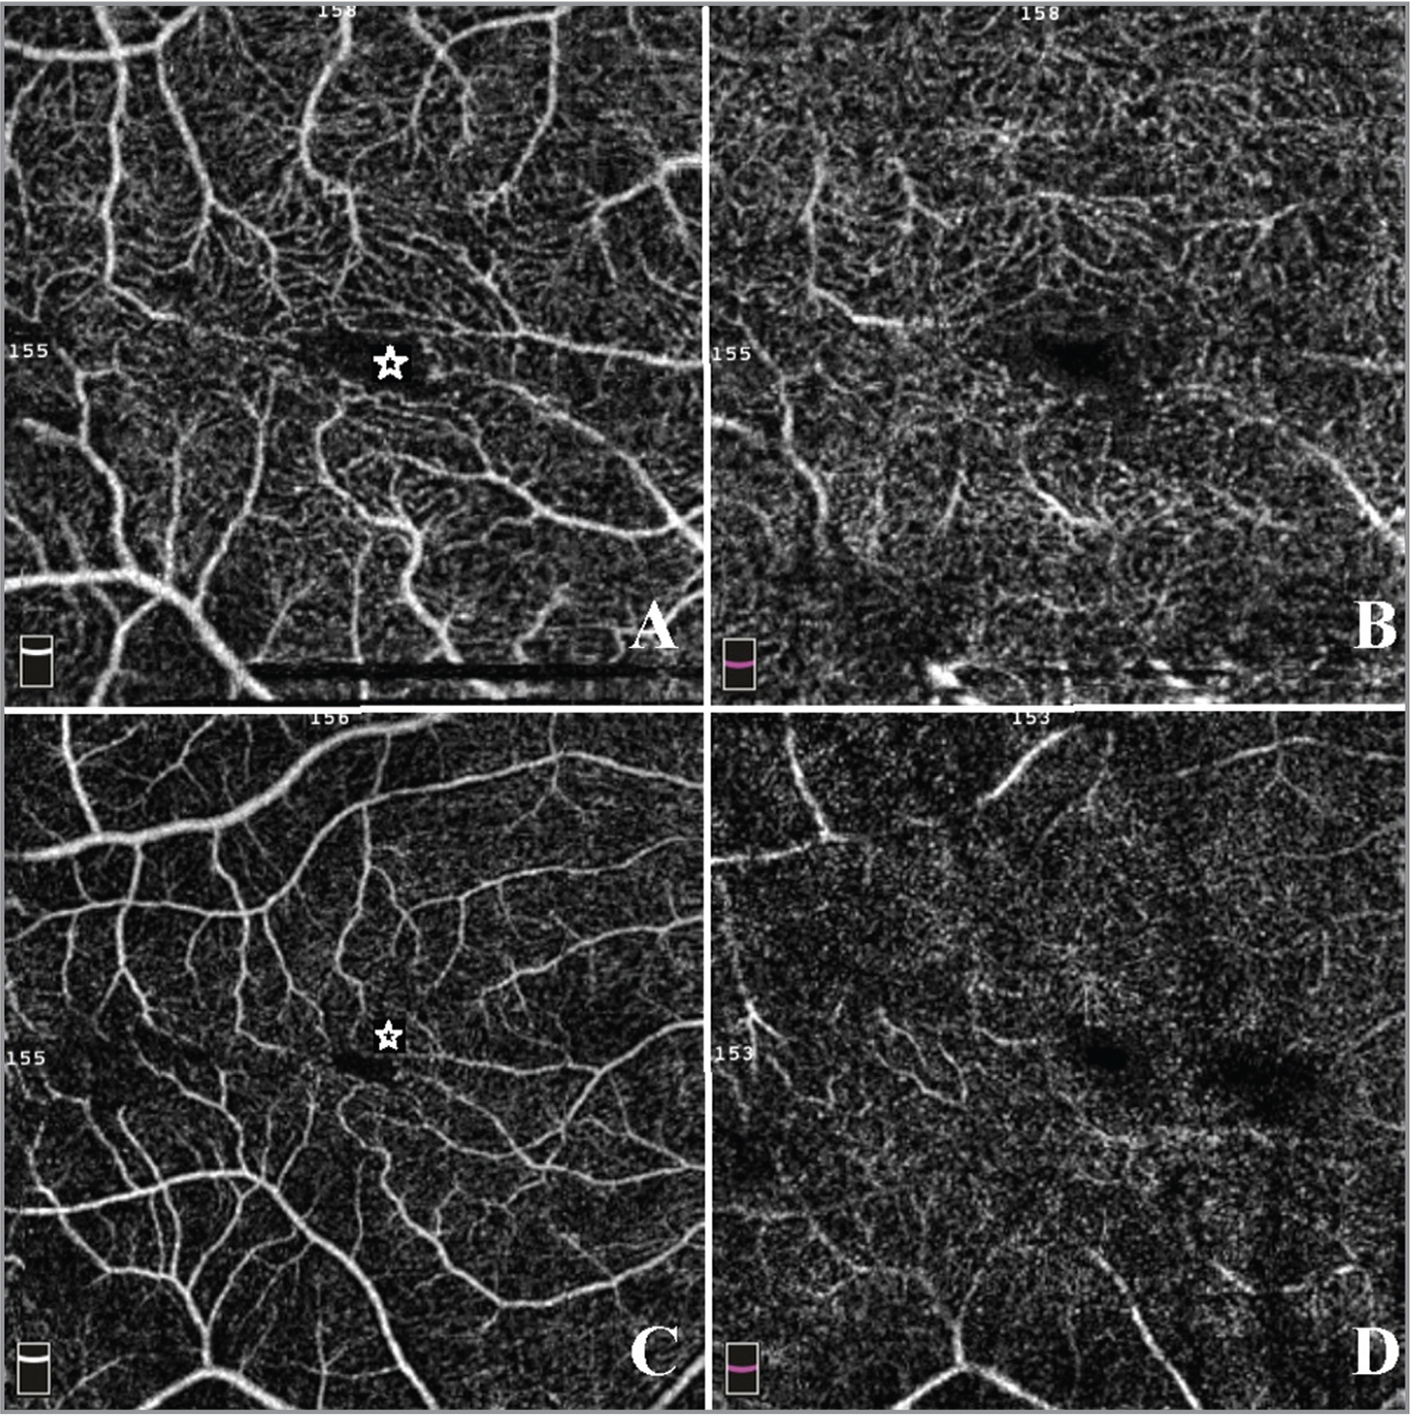 En face optical coherence tomography example of a patient with epiretinal membrane (ERM). (A) 3 × 3 superficial capillaries area. (B) 3 × 3 deep capillaries area. (C) 6 × 6 superficial capillaries area. (D) 6 × 6 deep capillaries area. The star marks the irregular form of the foveal avascular zone, caused by the ERM vessel dragging in the retinal superficial layer.